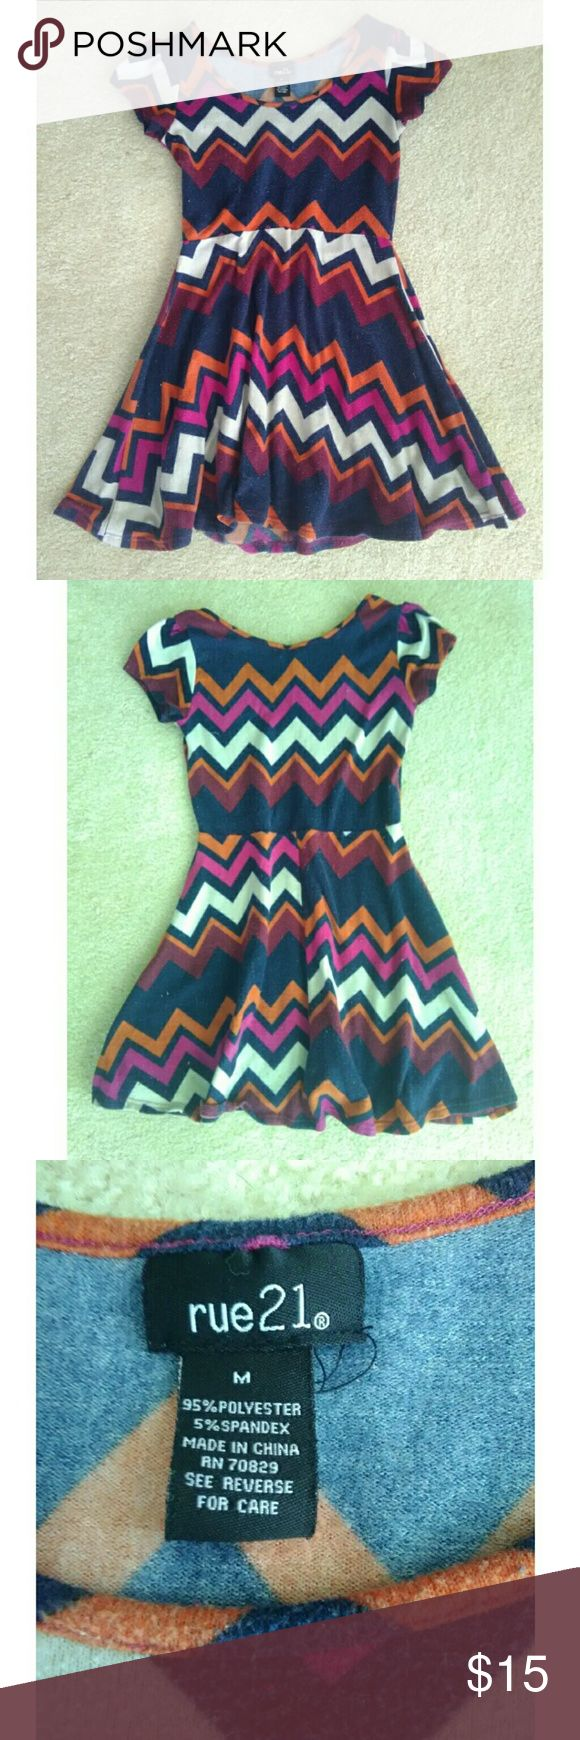 Rue21 Chevron Pattern Mini Skater Dress Really cute Chevron skater dress by Rue21. The fabric feels thick and warm, kind of like a sweater and it is in great condition. No damage or flaws other than the fabric's attraction to lint lol Rue21 Dresses Mini